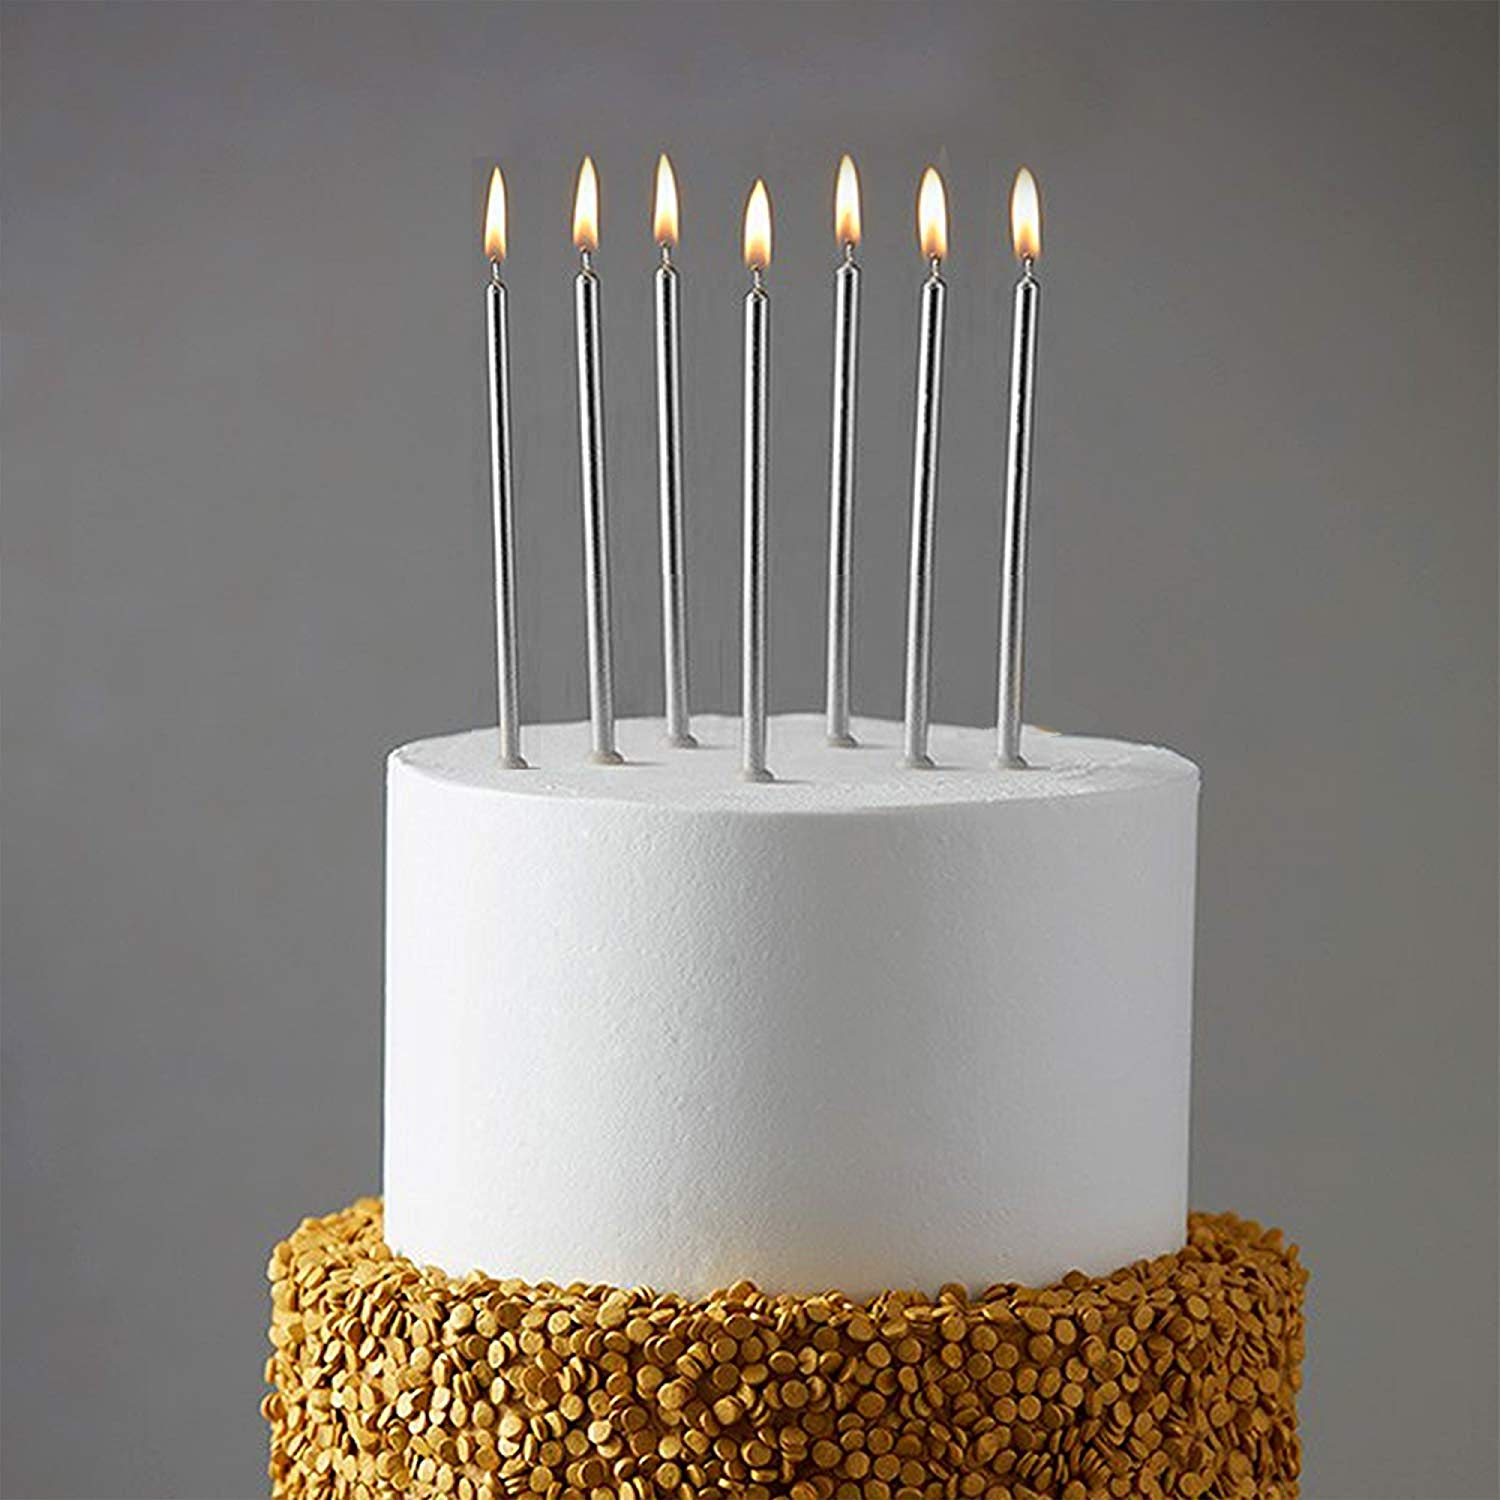 Get Quotations WEEPA 24 Count Party Long Thin Cake Candles Metallic Birthday In Holders For Cakes